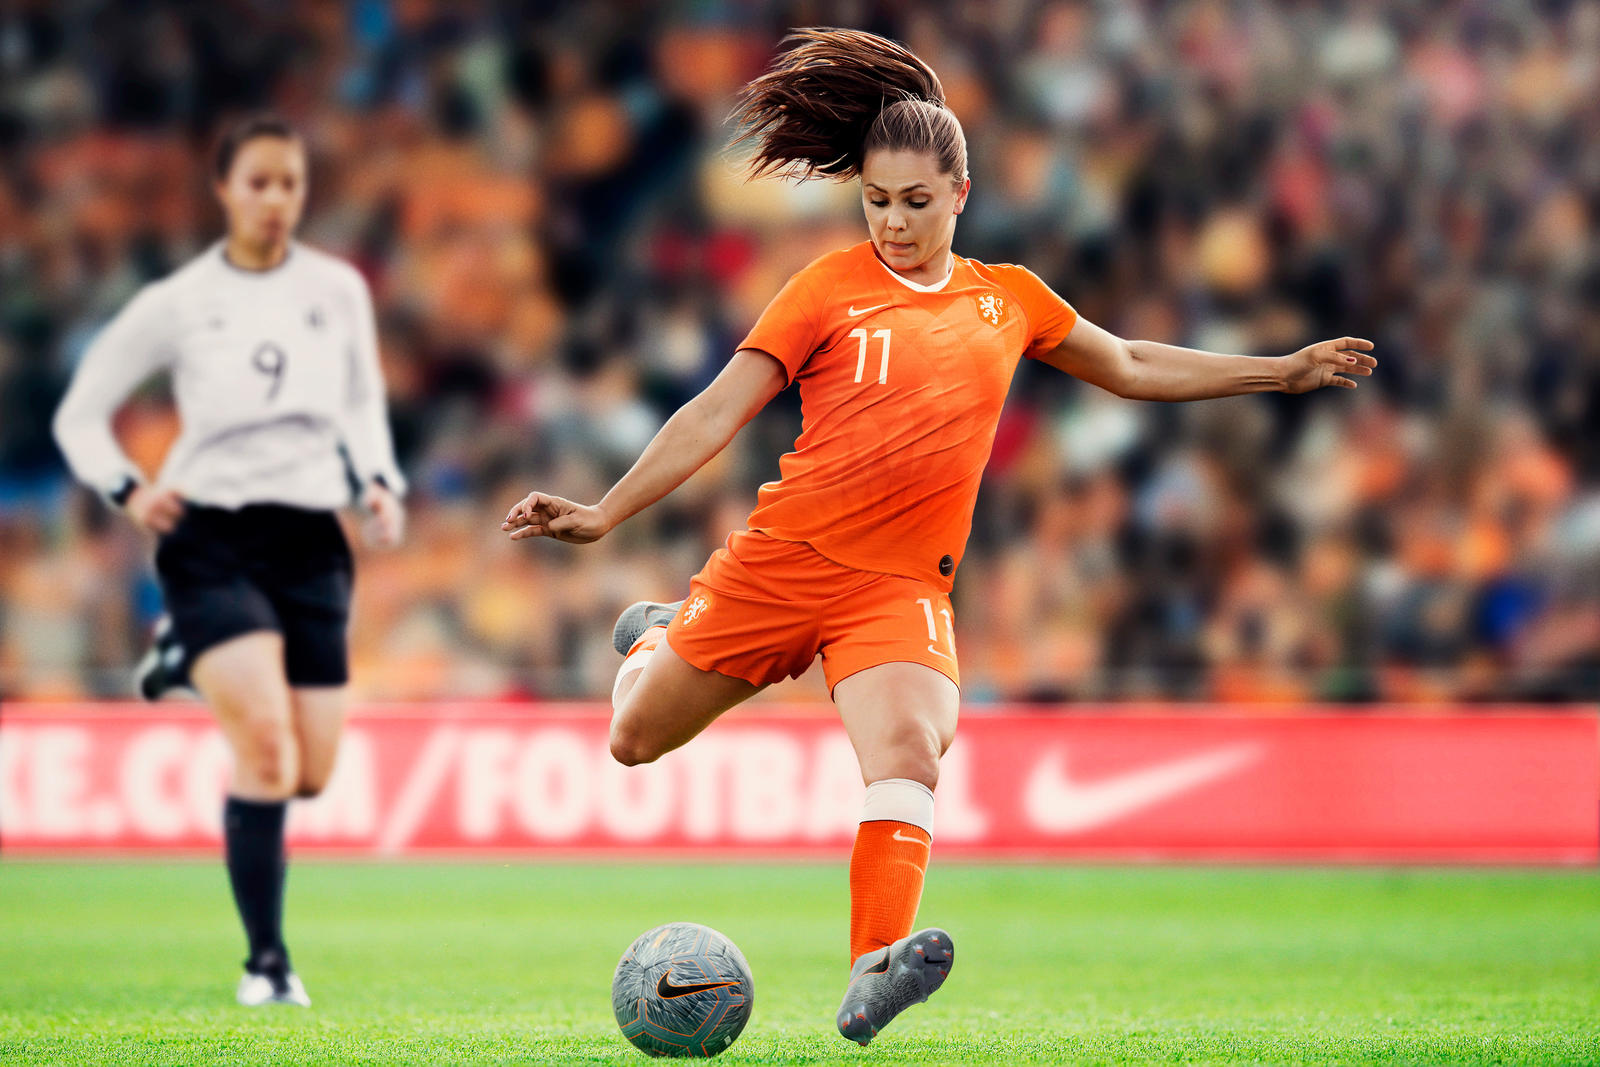 netherlands-national-team-kit-2019-performance-001_85998.jpg